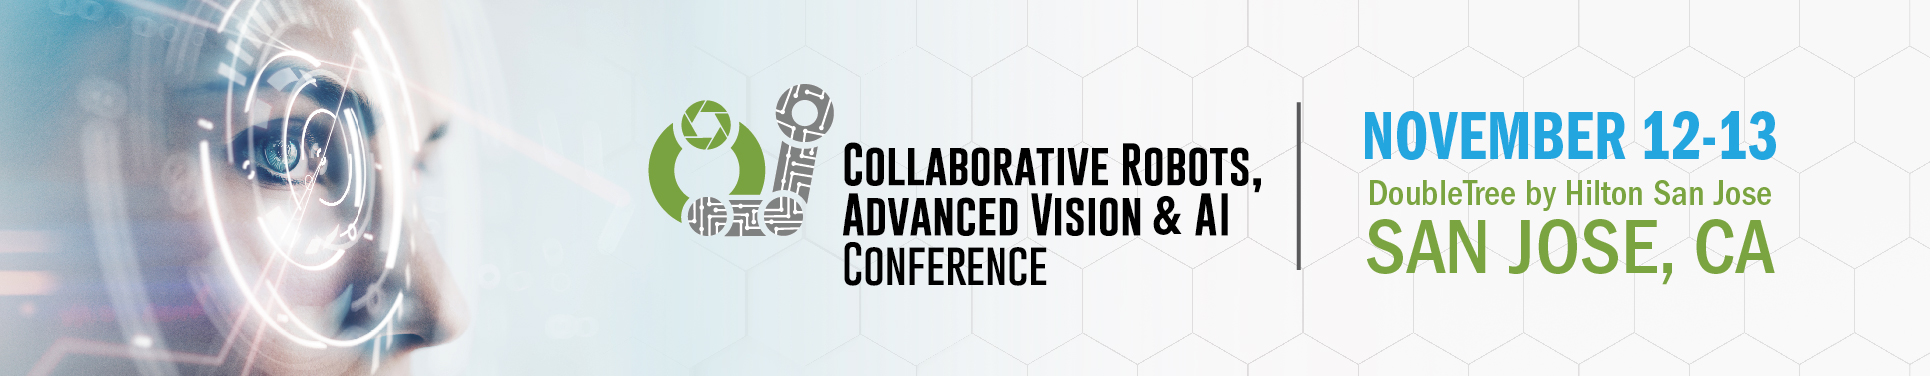 Collaborative Robots, Advanced Vision & AI Conference 2019